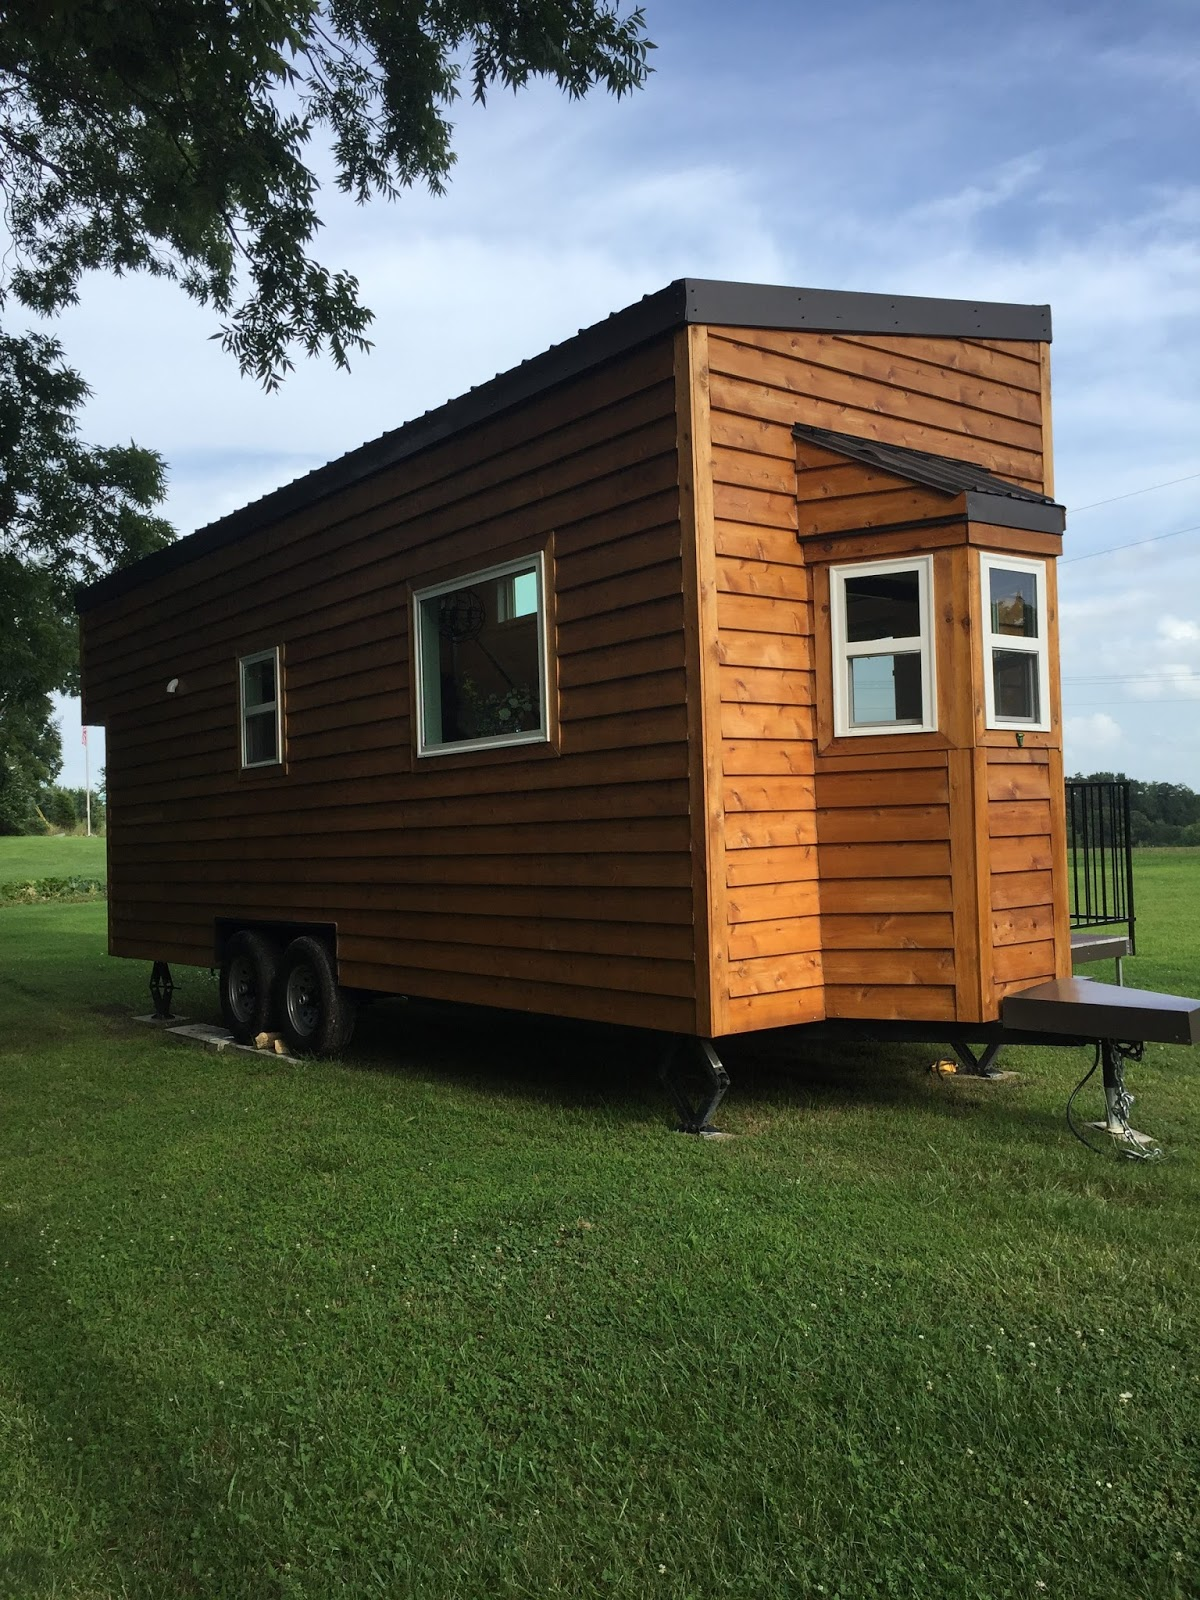 Luxurious Tiny House in Tennessee 280 Sq Ft TINY HOUSE TOWN